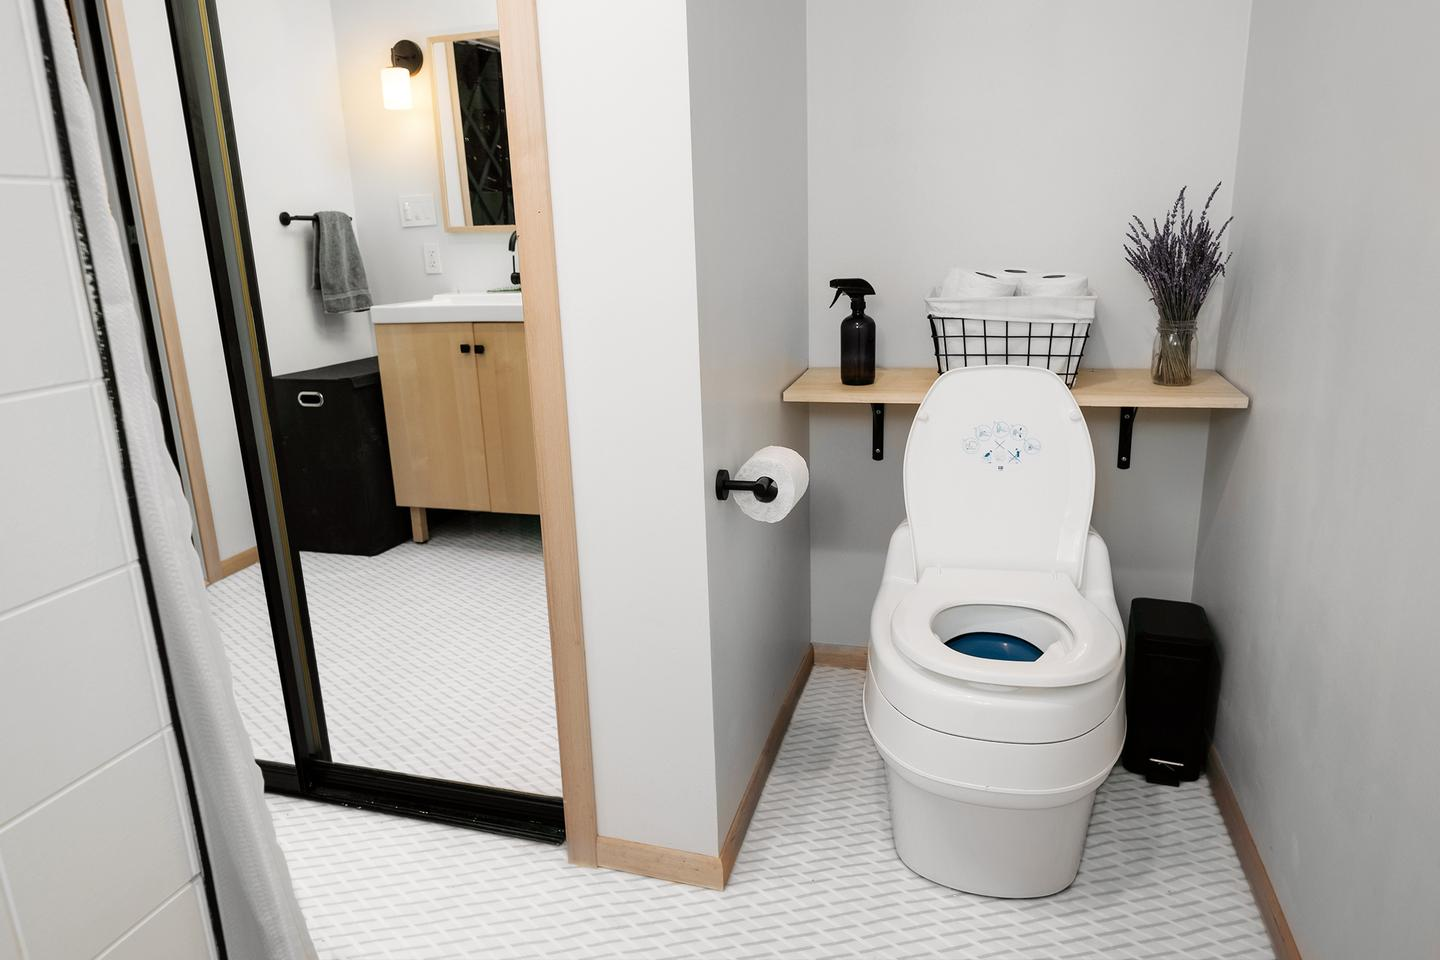 The bathroom features a composting toilet